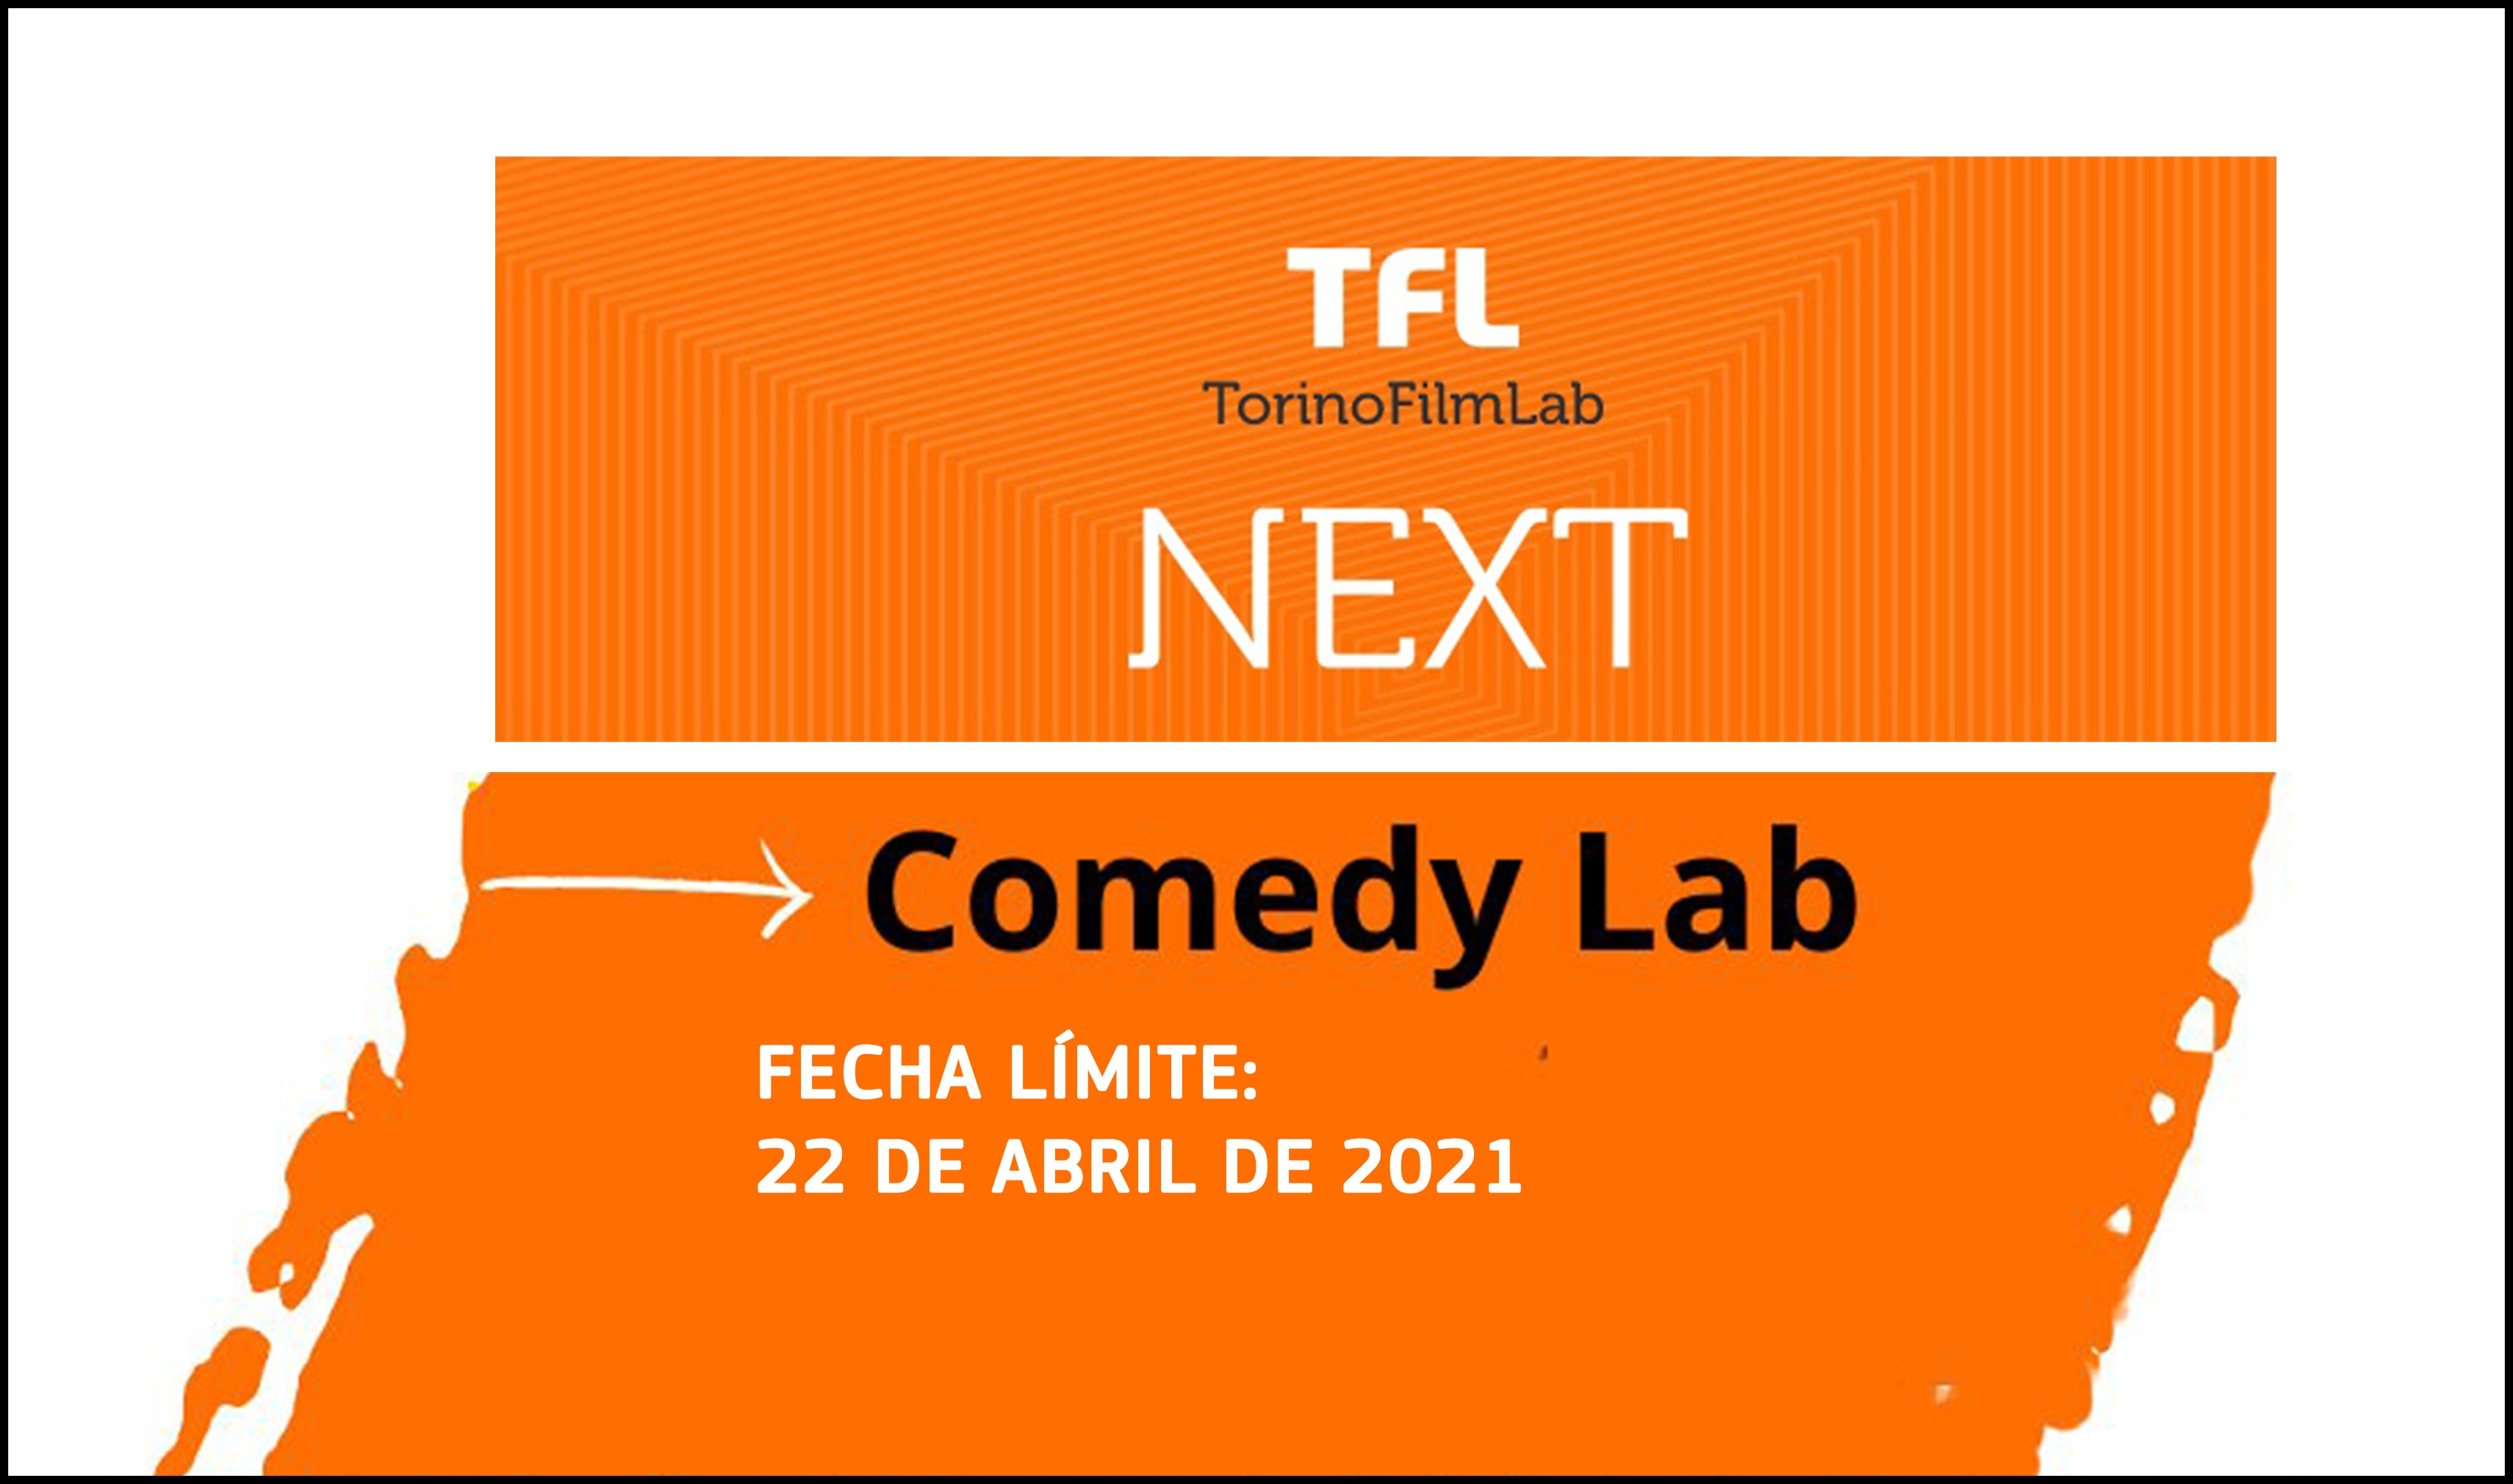 TORINOFILMLAB: Apúntate a TFL Next - Comedy Lab